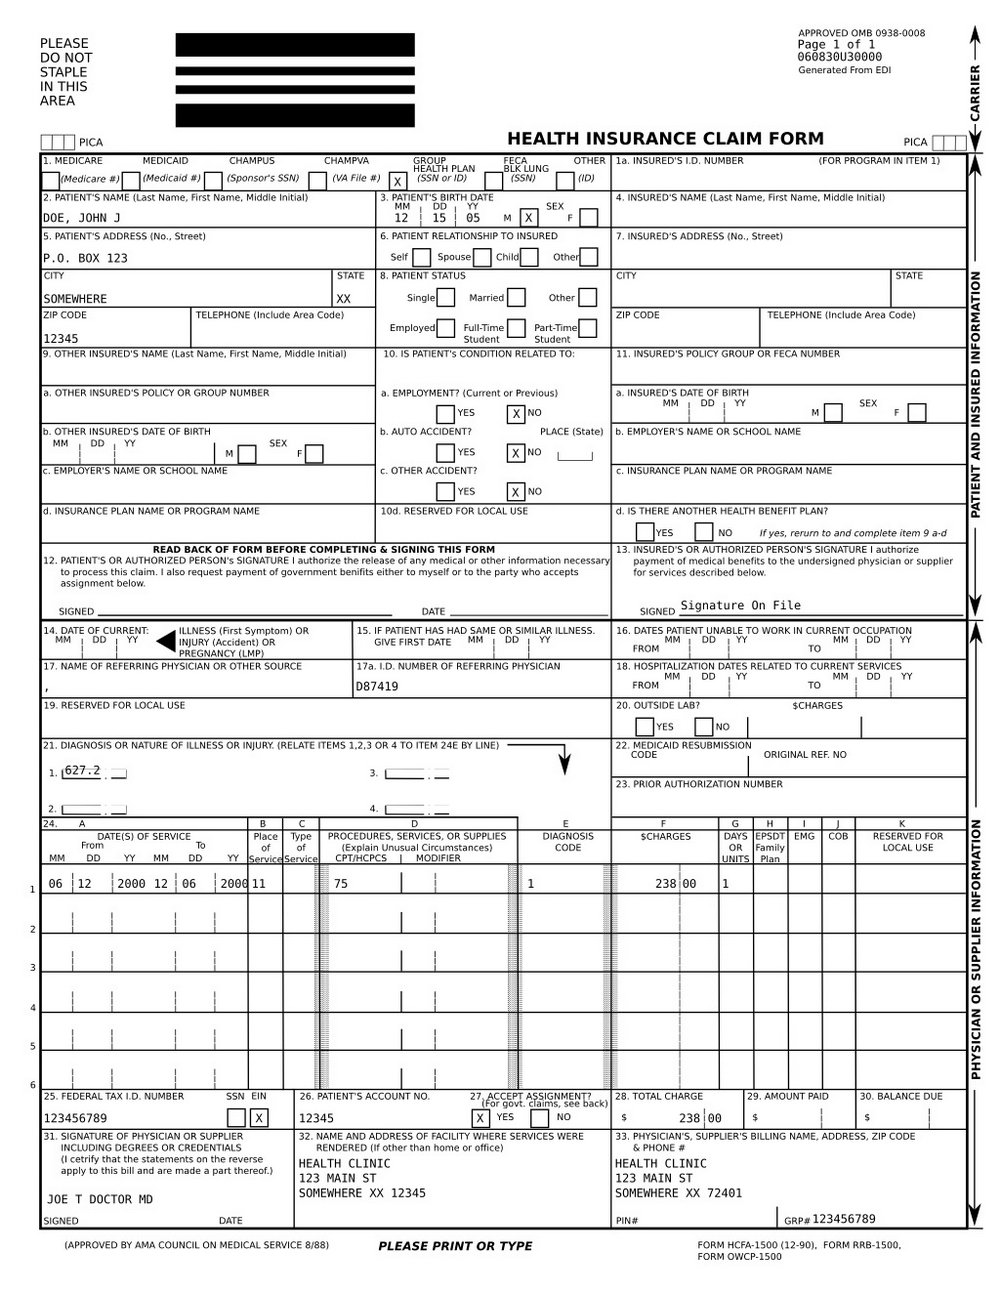 Cms 1500 Form Fillable